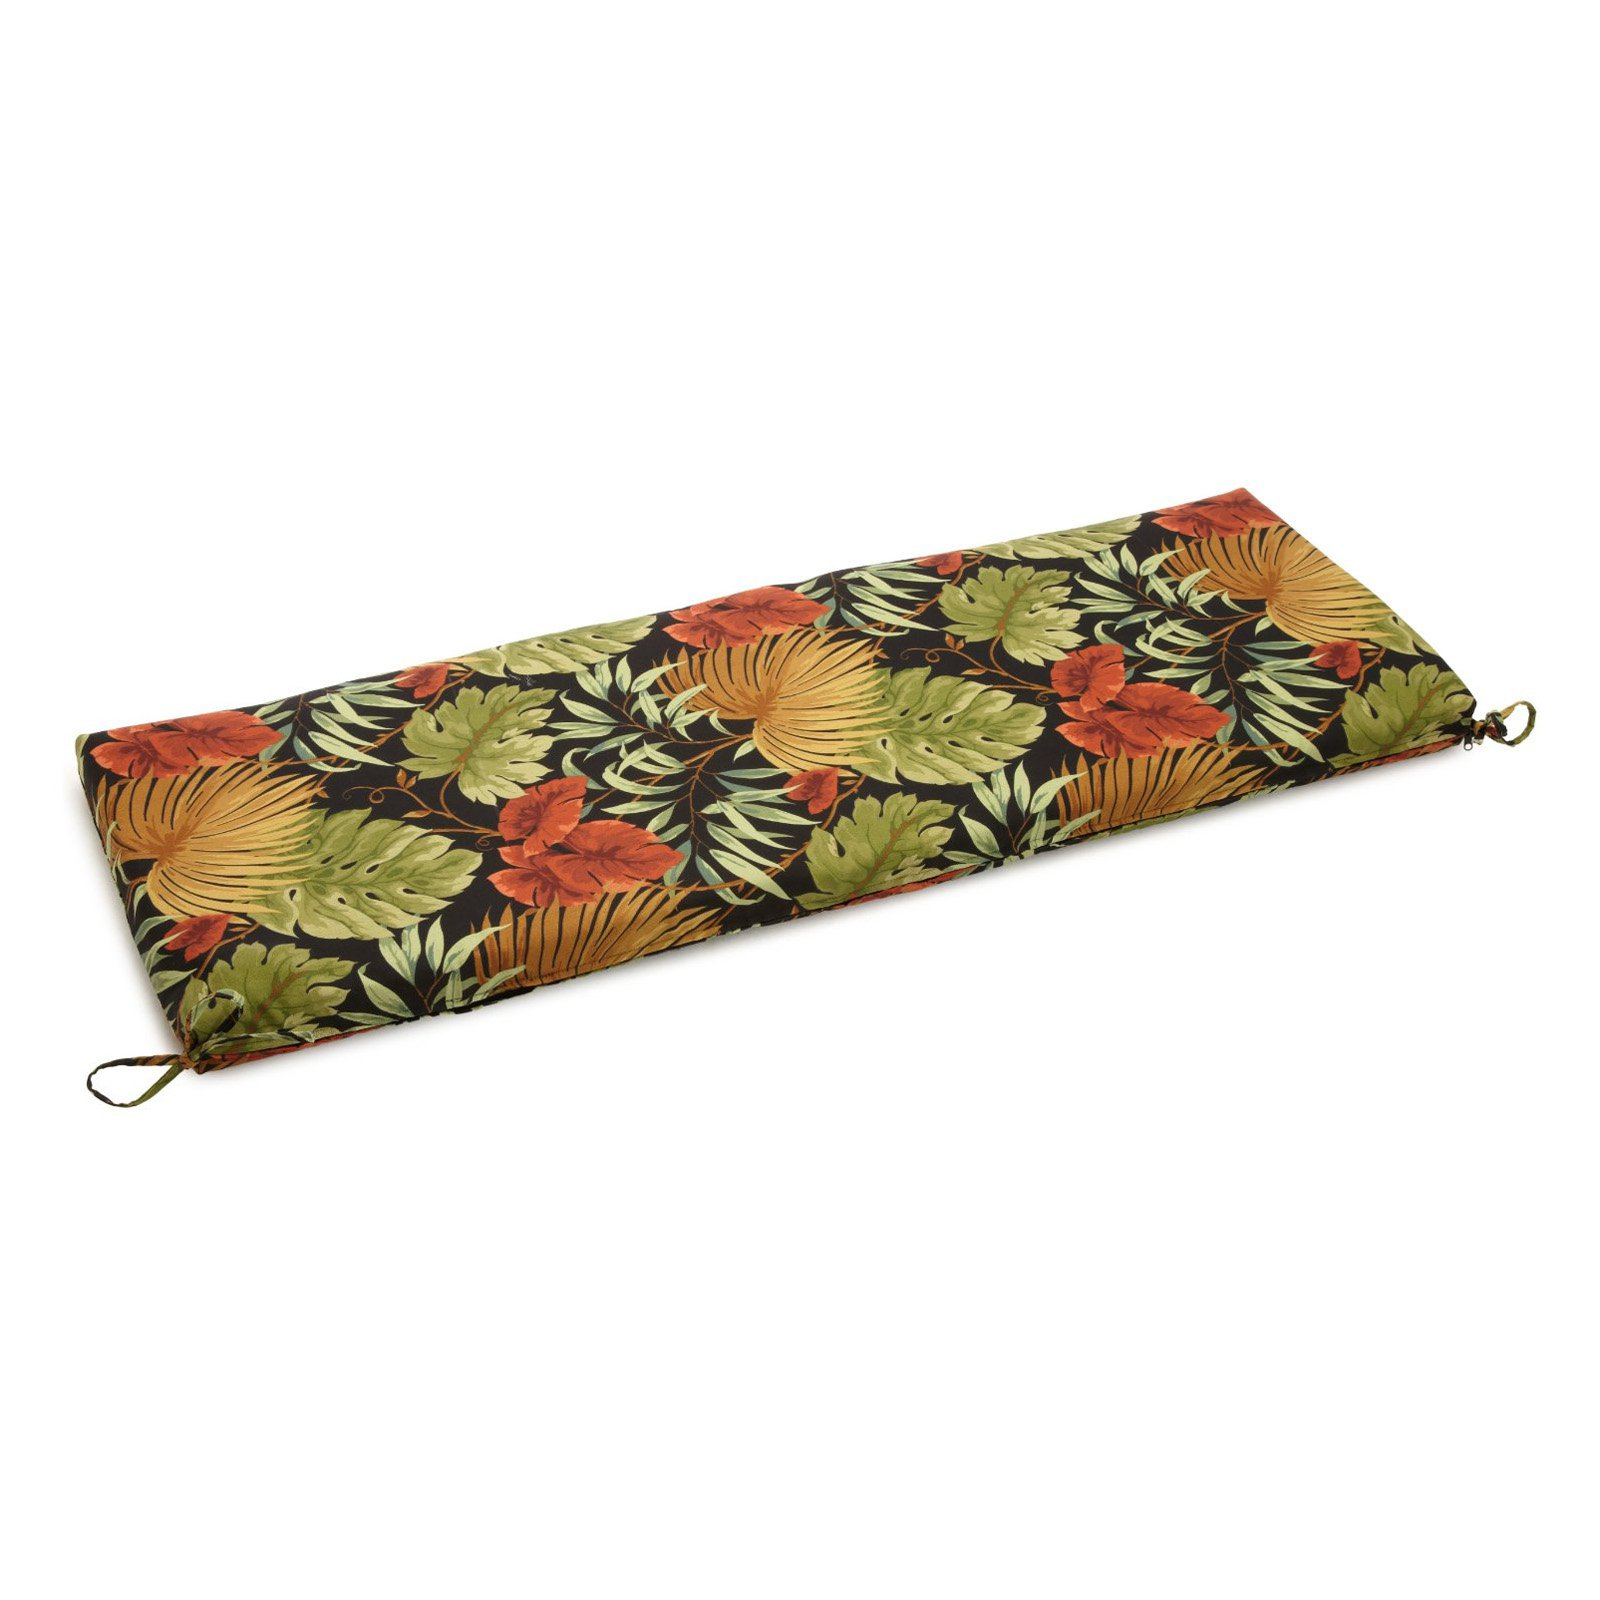 Blazing Needles 54 x 19 in. Outdoor UV Resistant Patio Bench   Swing Cushion by Blazing Needles